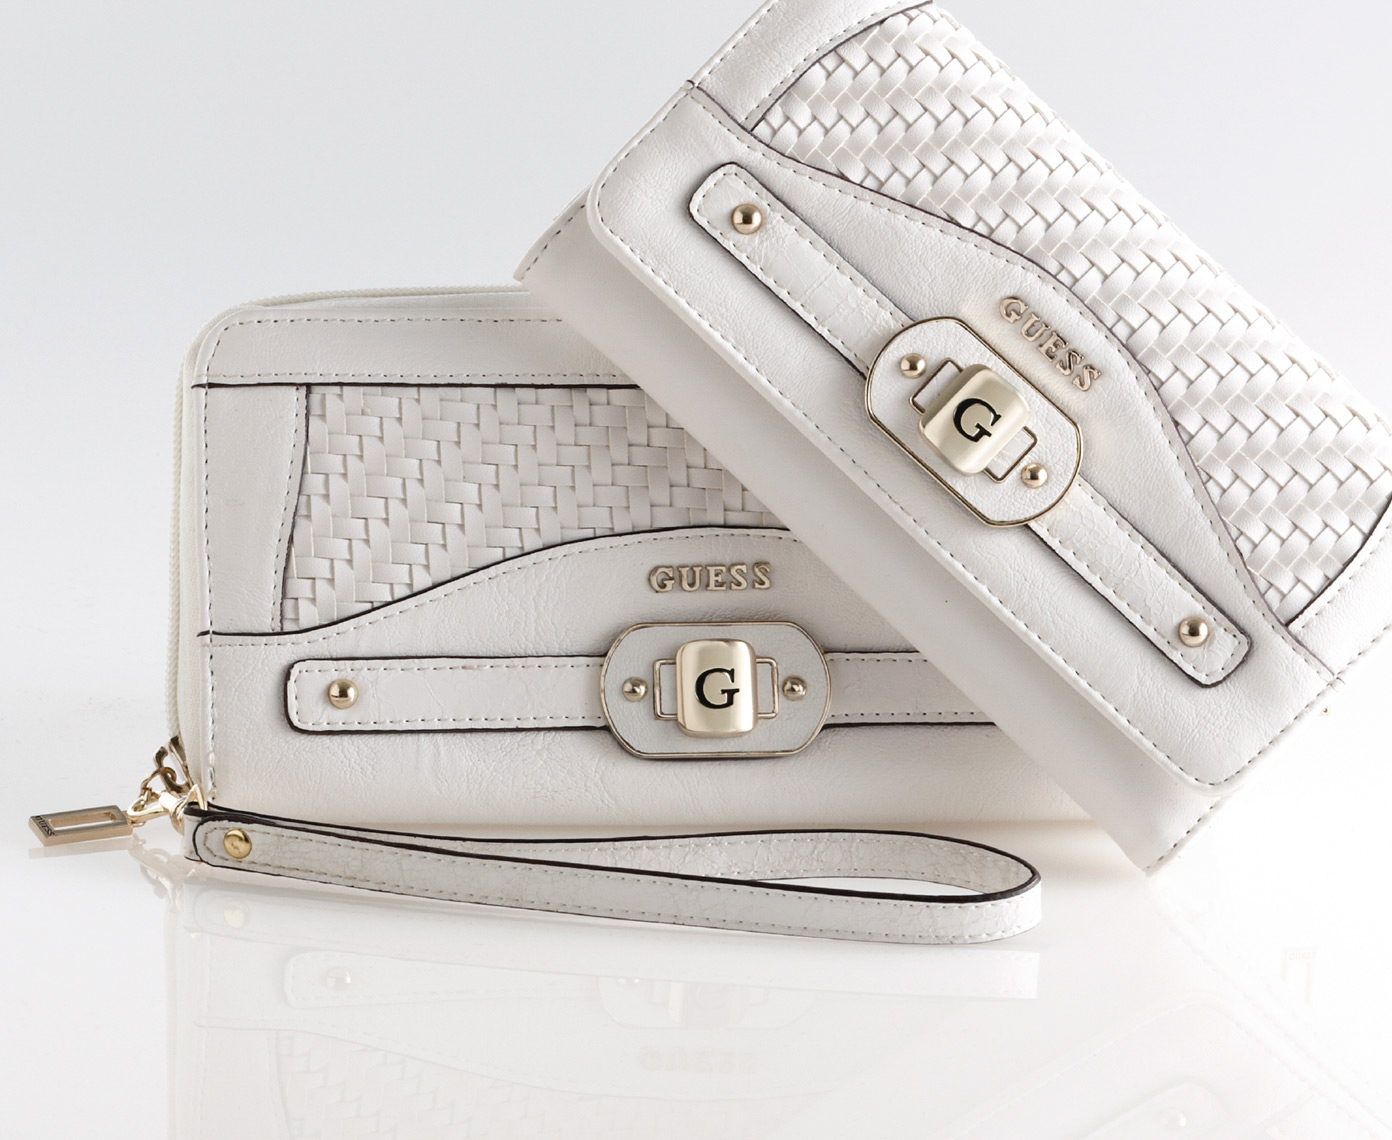 2 small white handbags with white wriststraps